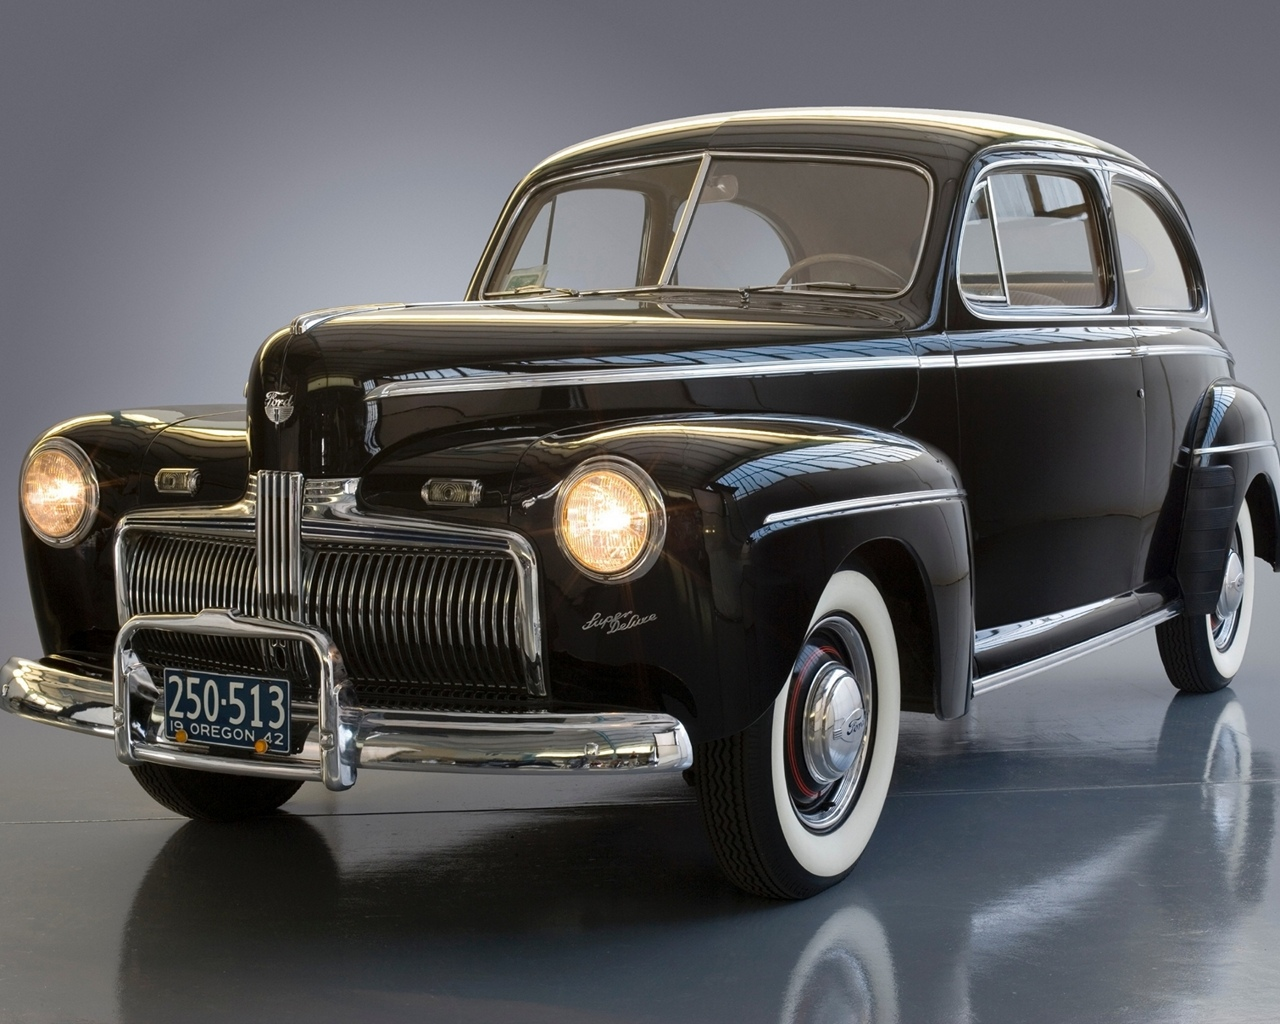 Hd wallpapers 2012 american classic cars wallpaperz - Old american cars wallpapers ...